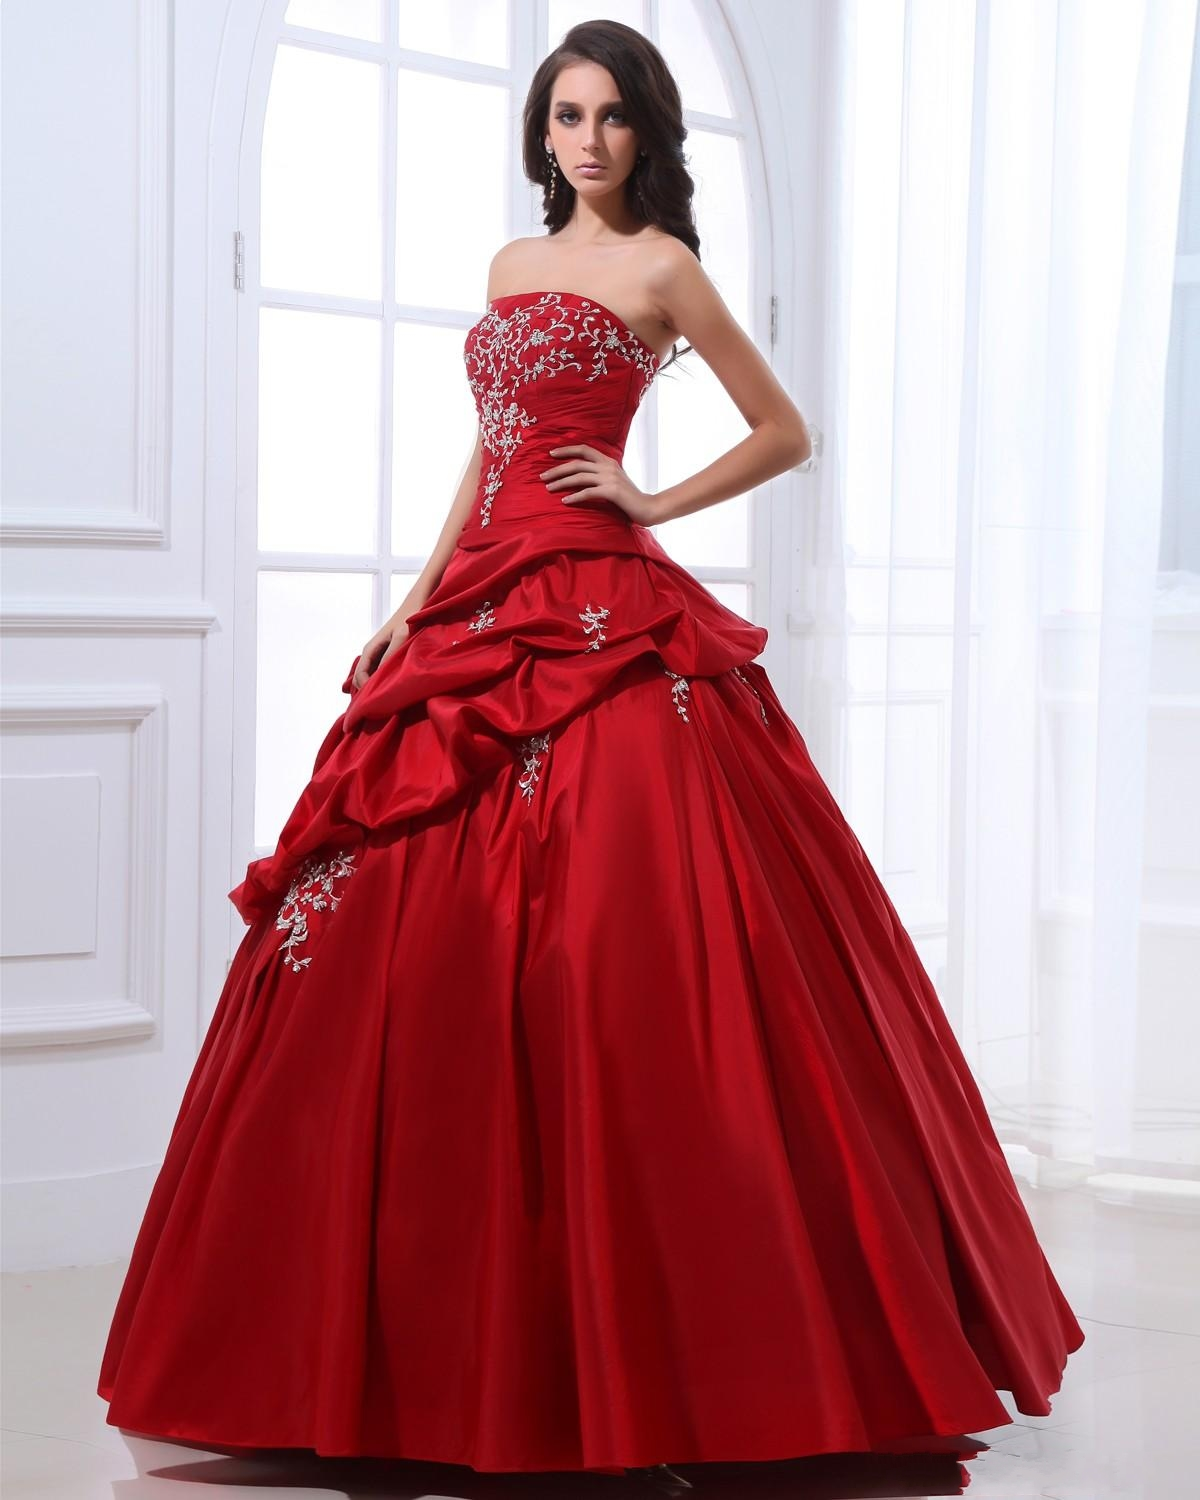 1574efa9cbb Beautiful Collection of Valentine s Day Dresses for 2015 - SheClick.com